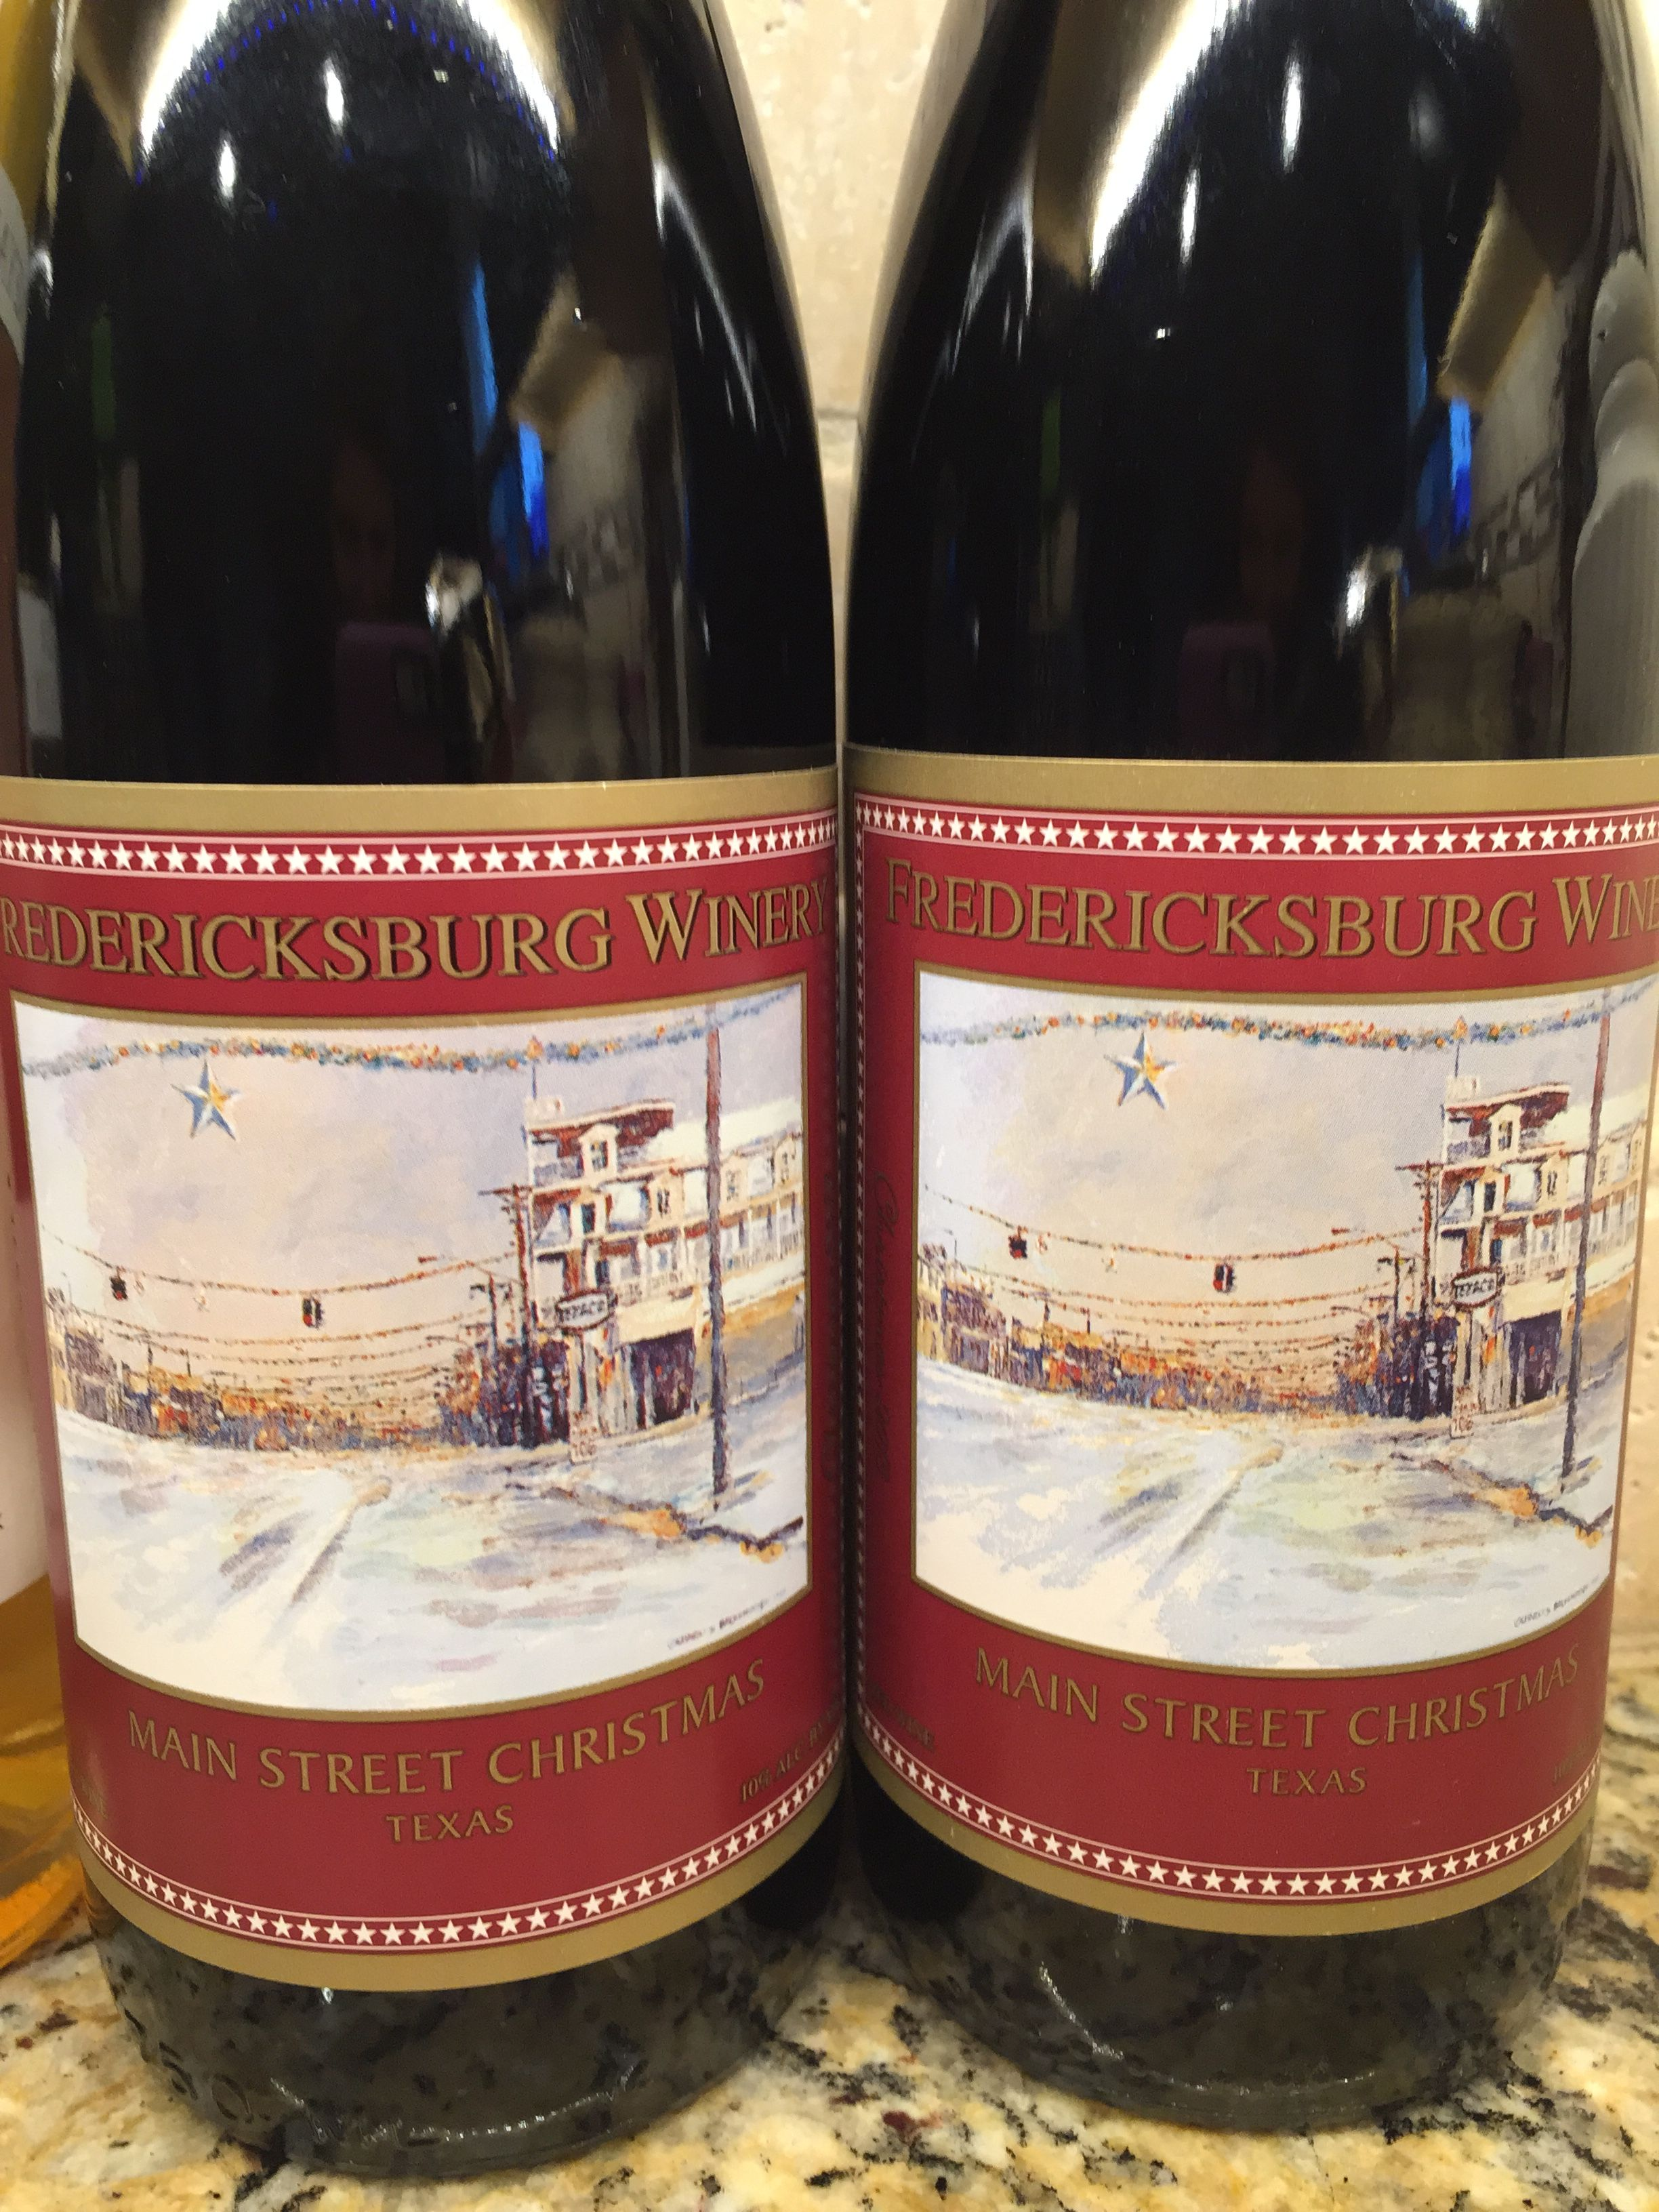 Fredericksburg Winery Main Street Christmas Wine This Is A Special Wine Made For The Holiday Season It Is Fredericksburg Wineries Wine Design Christmas Wine